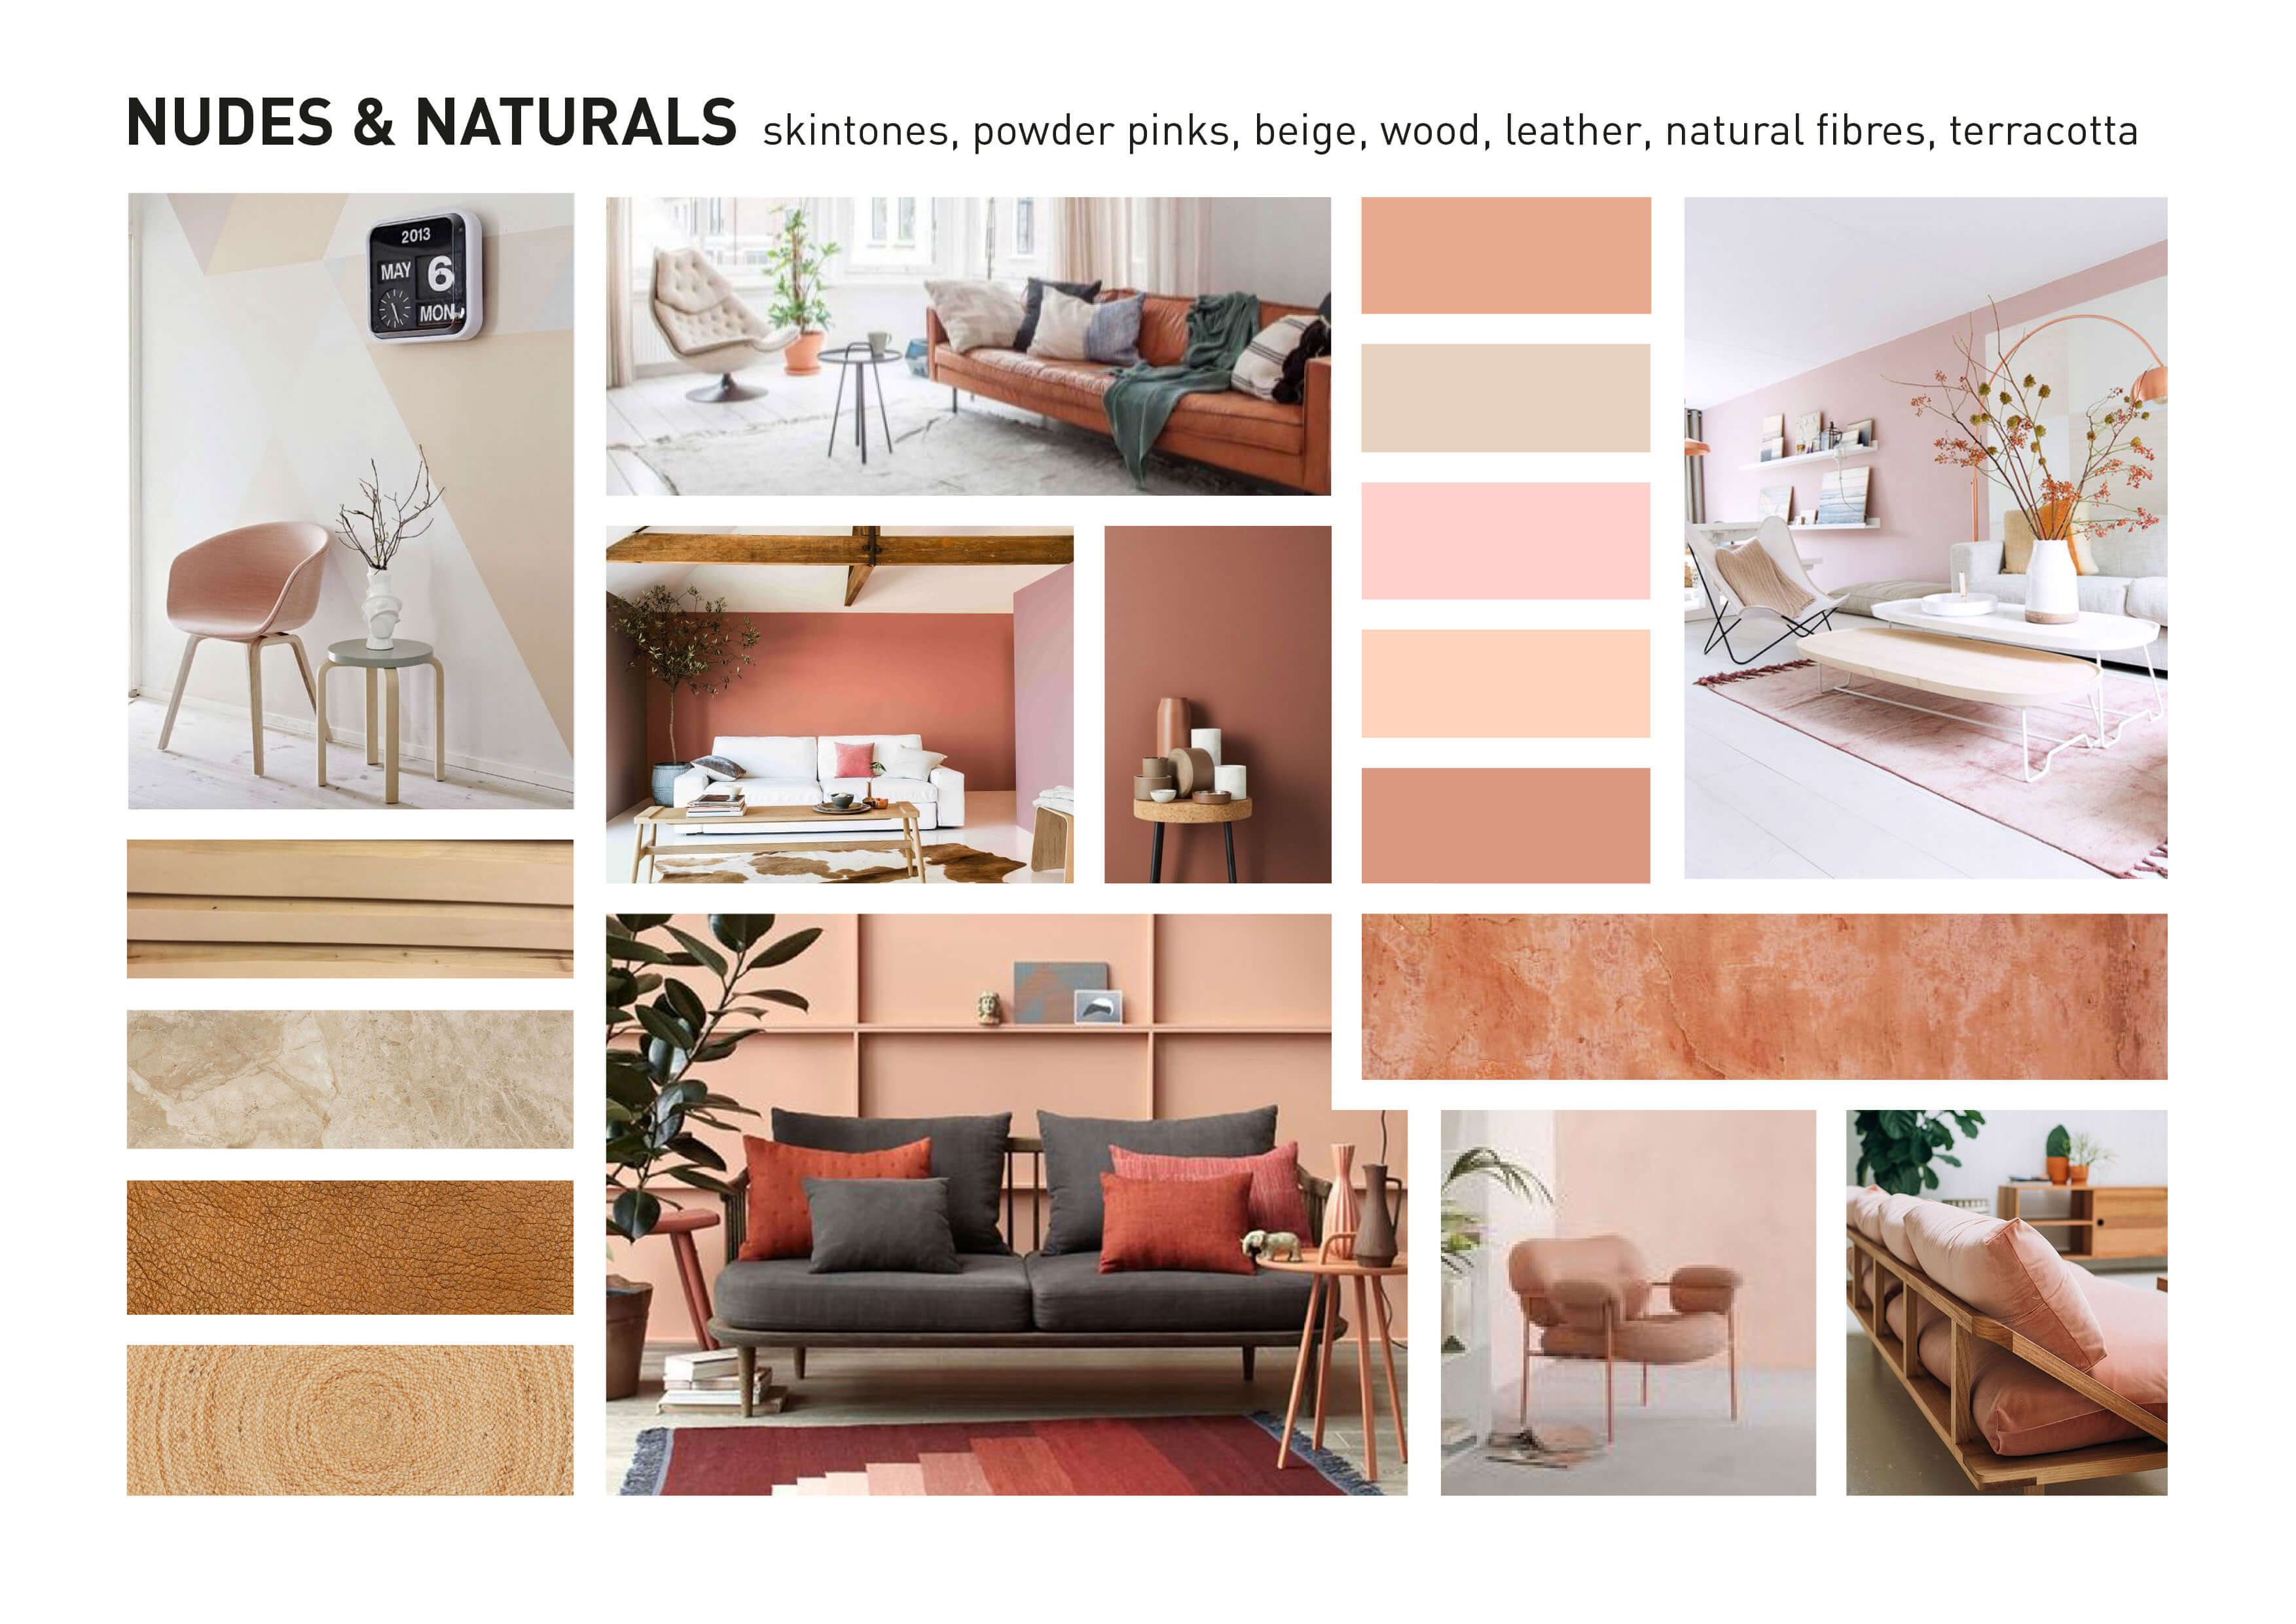 https://ininterieurs.nl/wp-content/uploads/2017/07/NUDES-NATURALS-color-and-material-forecast-interior-design-trends-2018-1.jpg